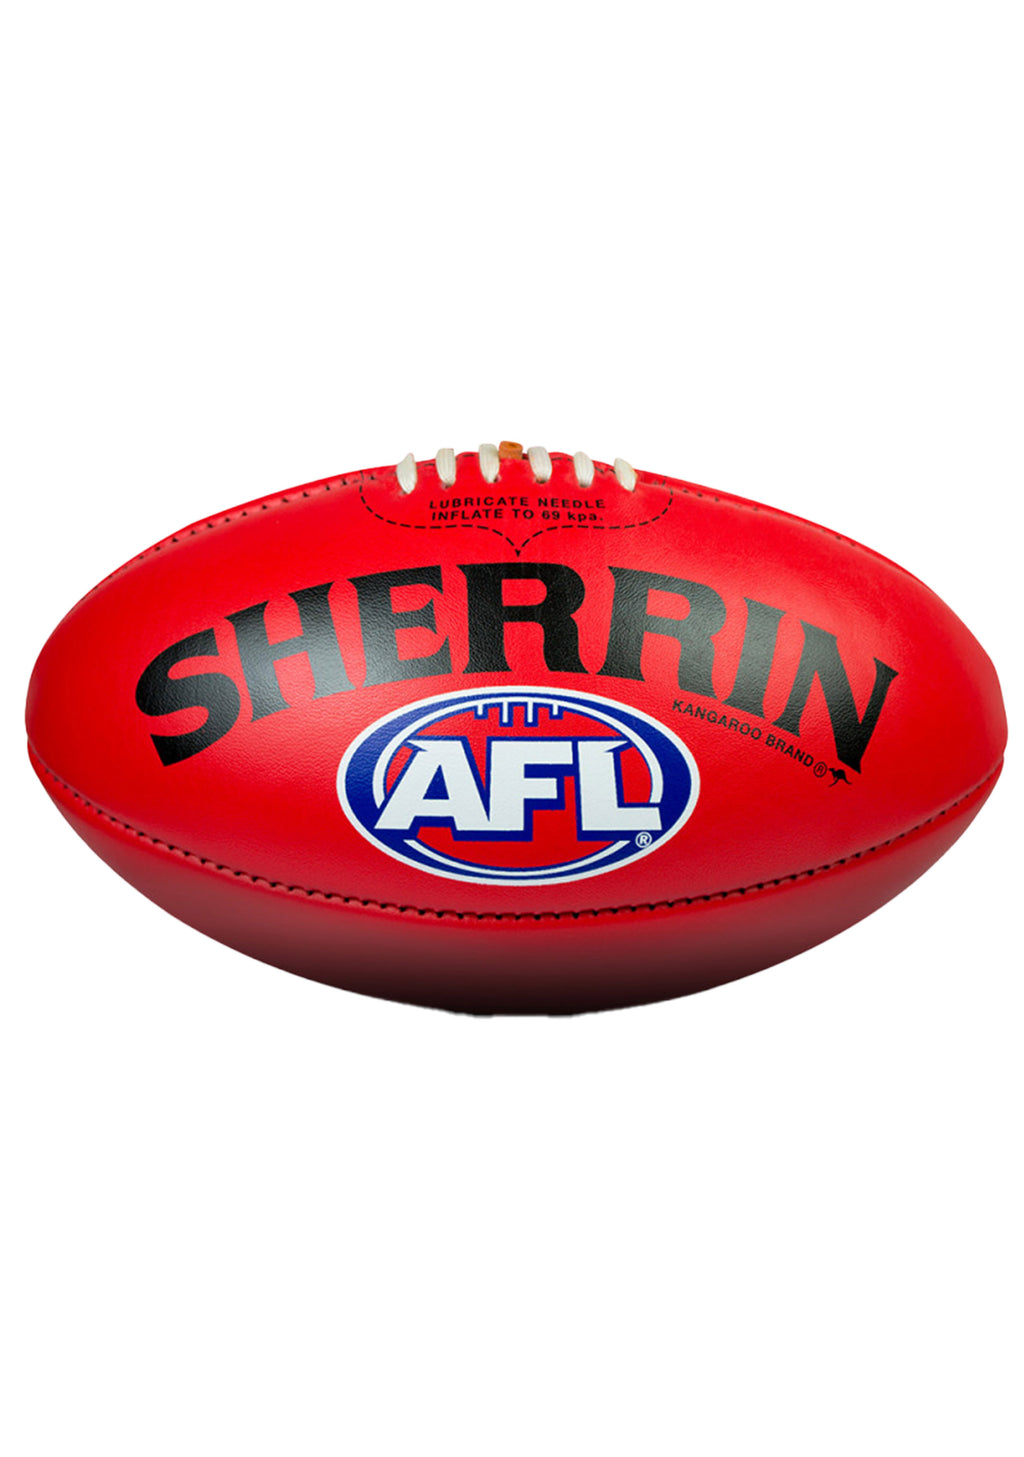 SHERRIN AFL OFFICIAL GAME BALL ASSORTED TEAMS